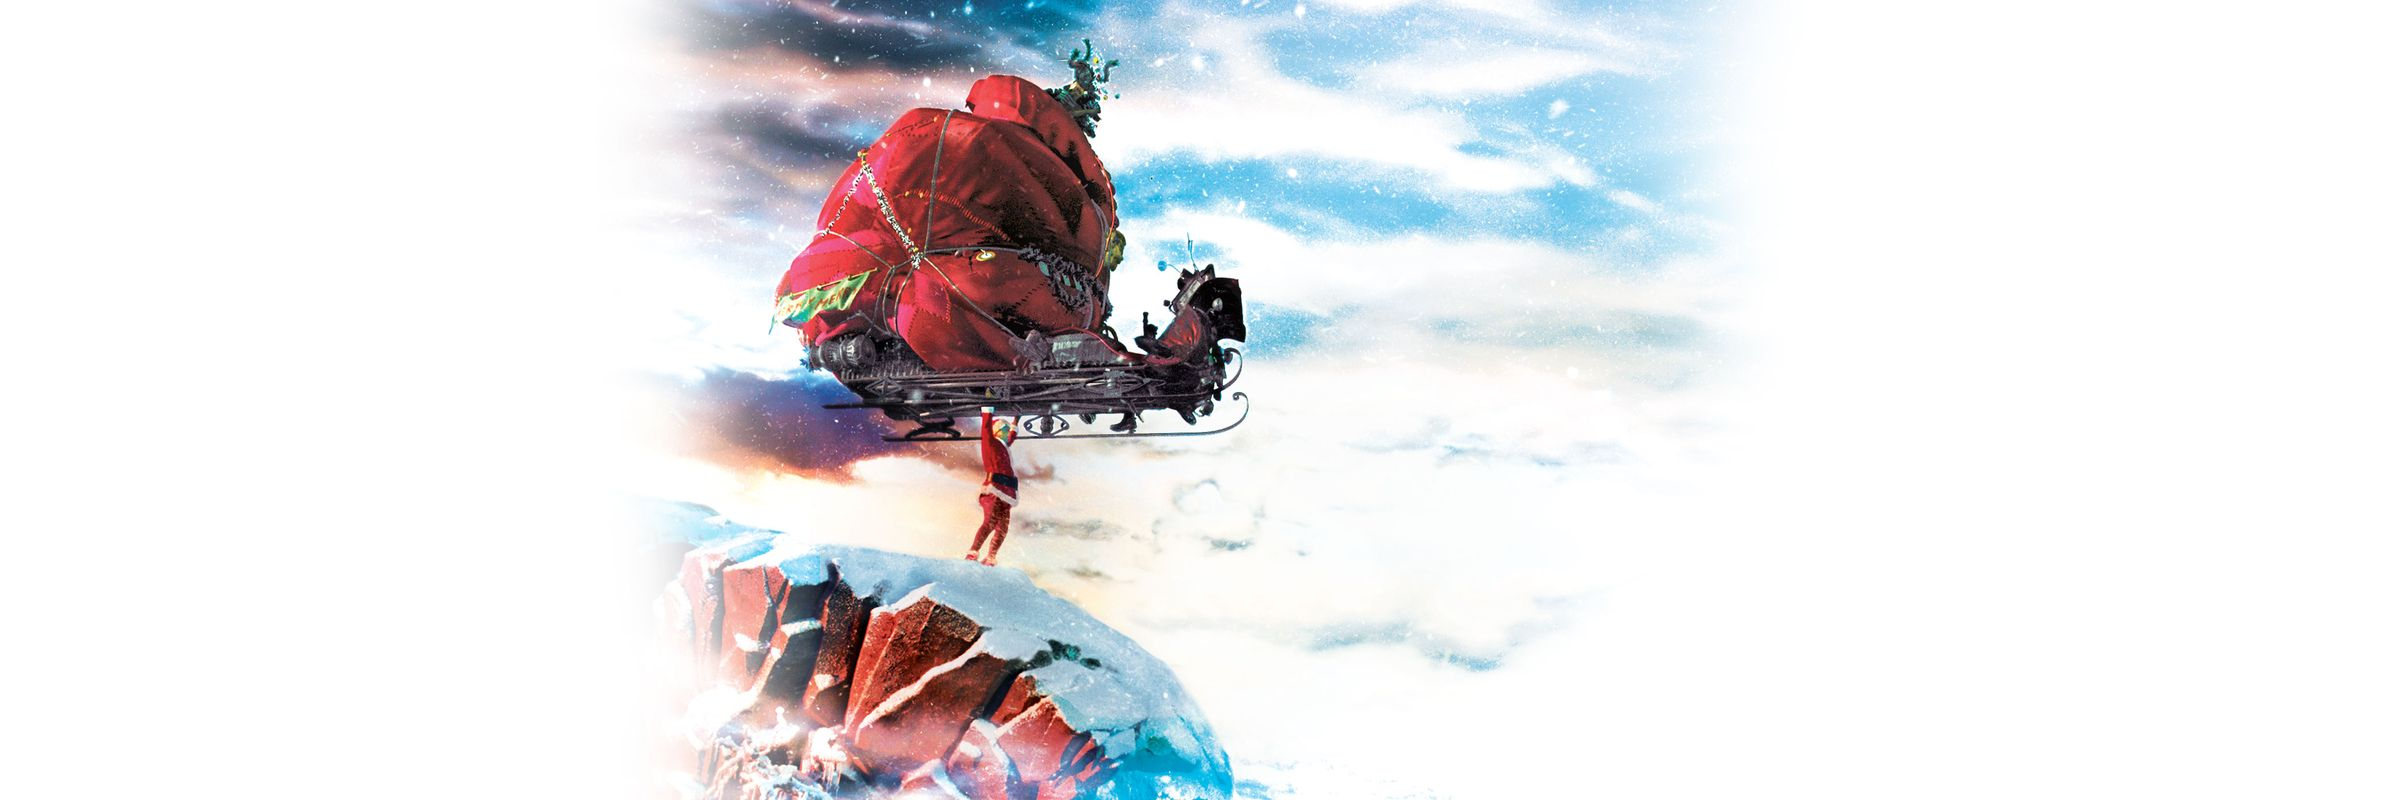 How The Grinch Stole Christmas Full Movie.Dr Seuss How The Grinch Stole Christmas Full Movie